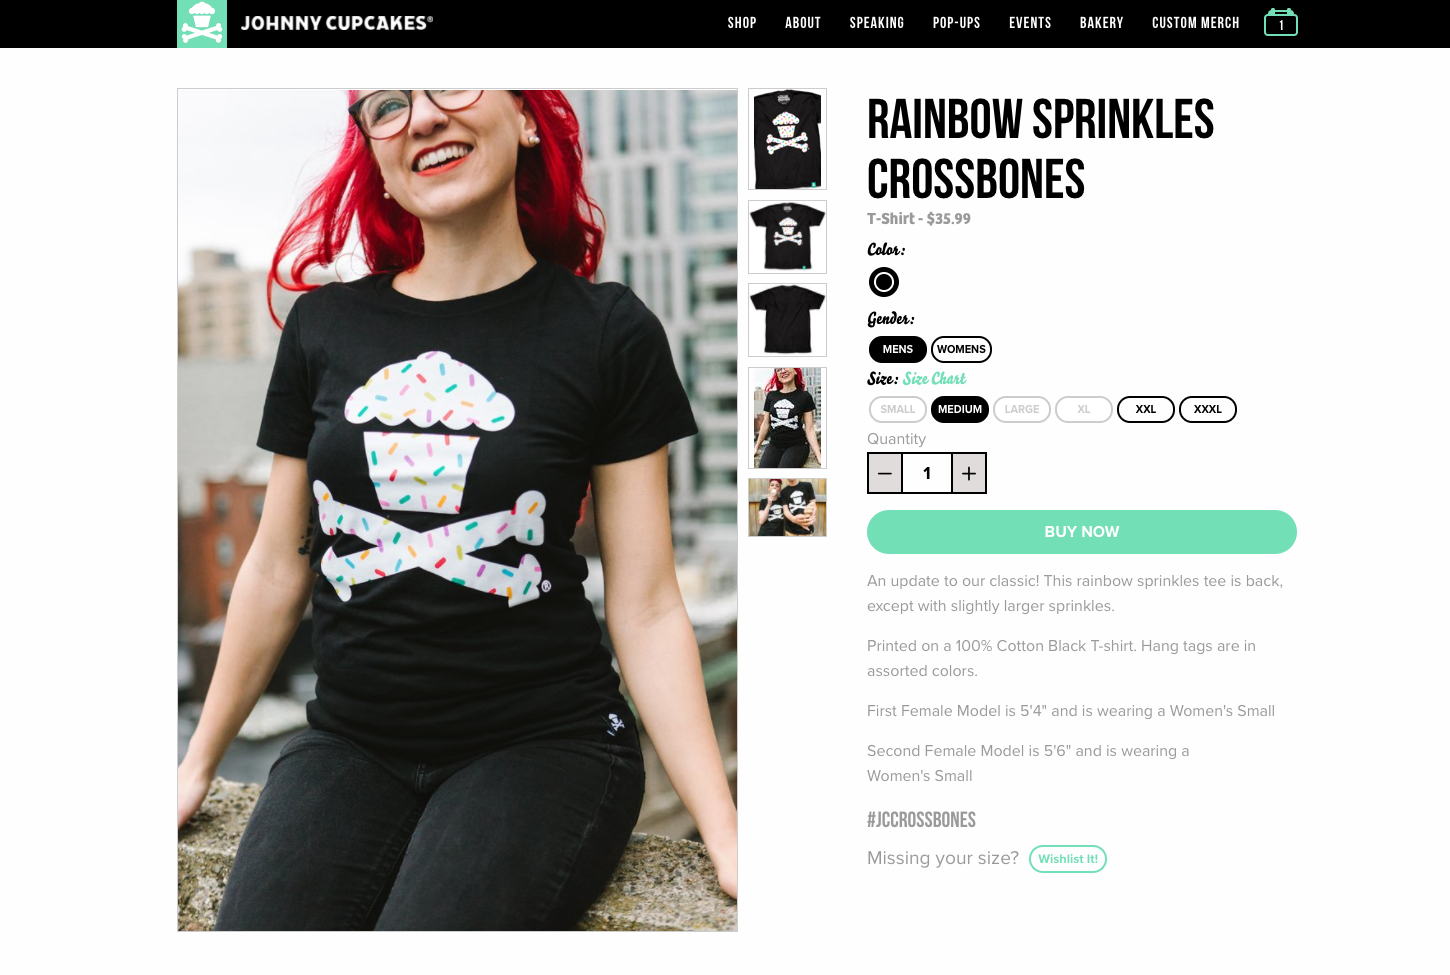 product page: johnny cupcakes 1